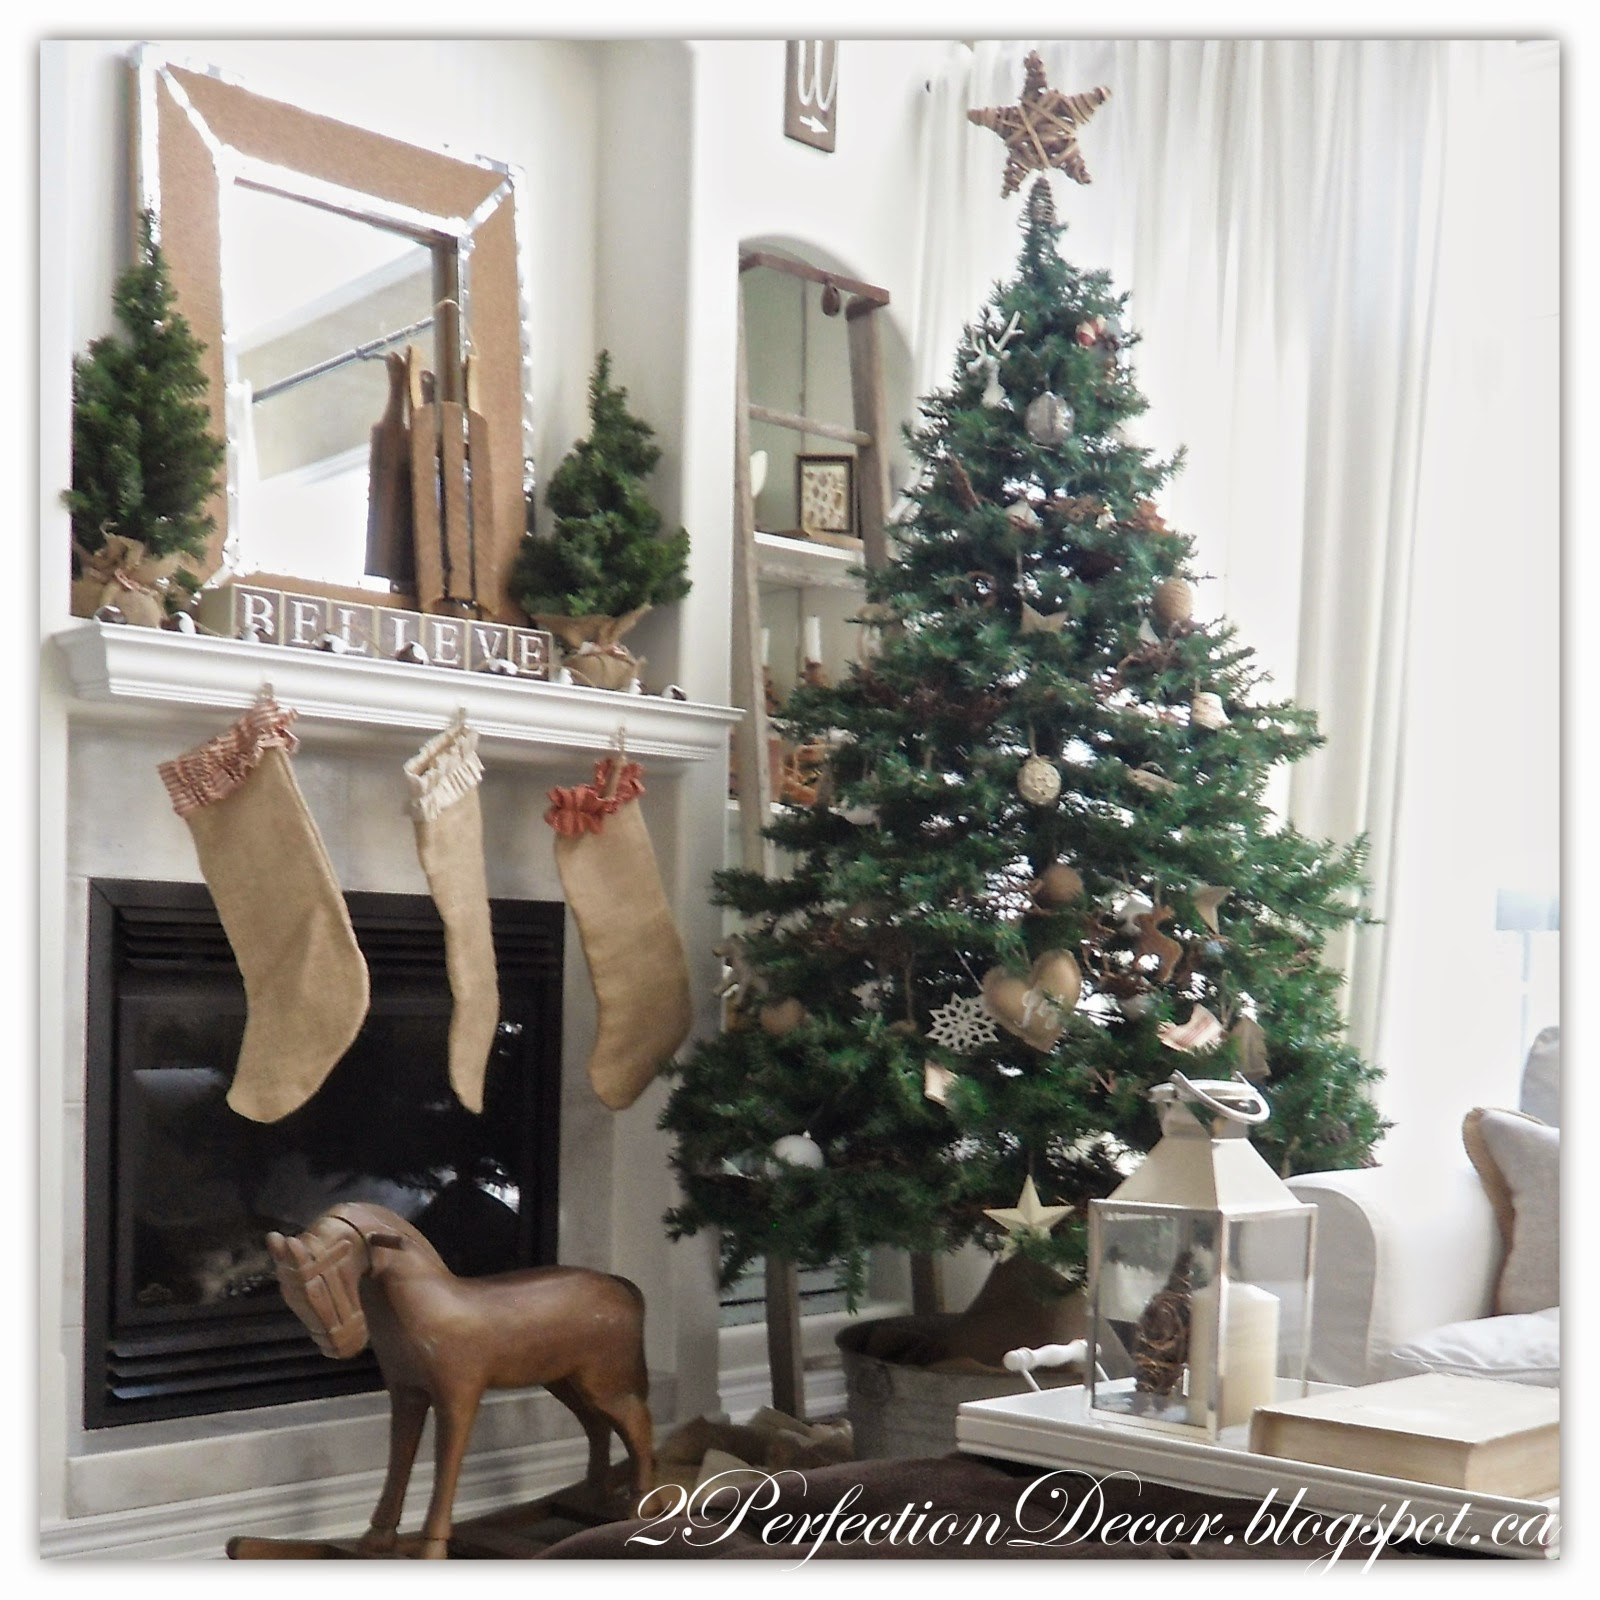 our understated tree features a wooden star vine garland with a mix of new and homemade ornaments mostly made from natural materials like burlap